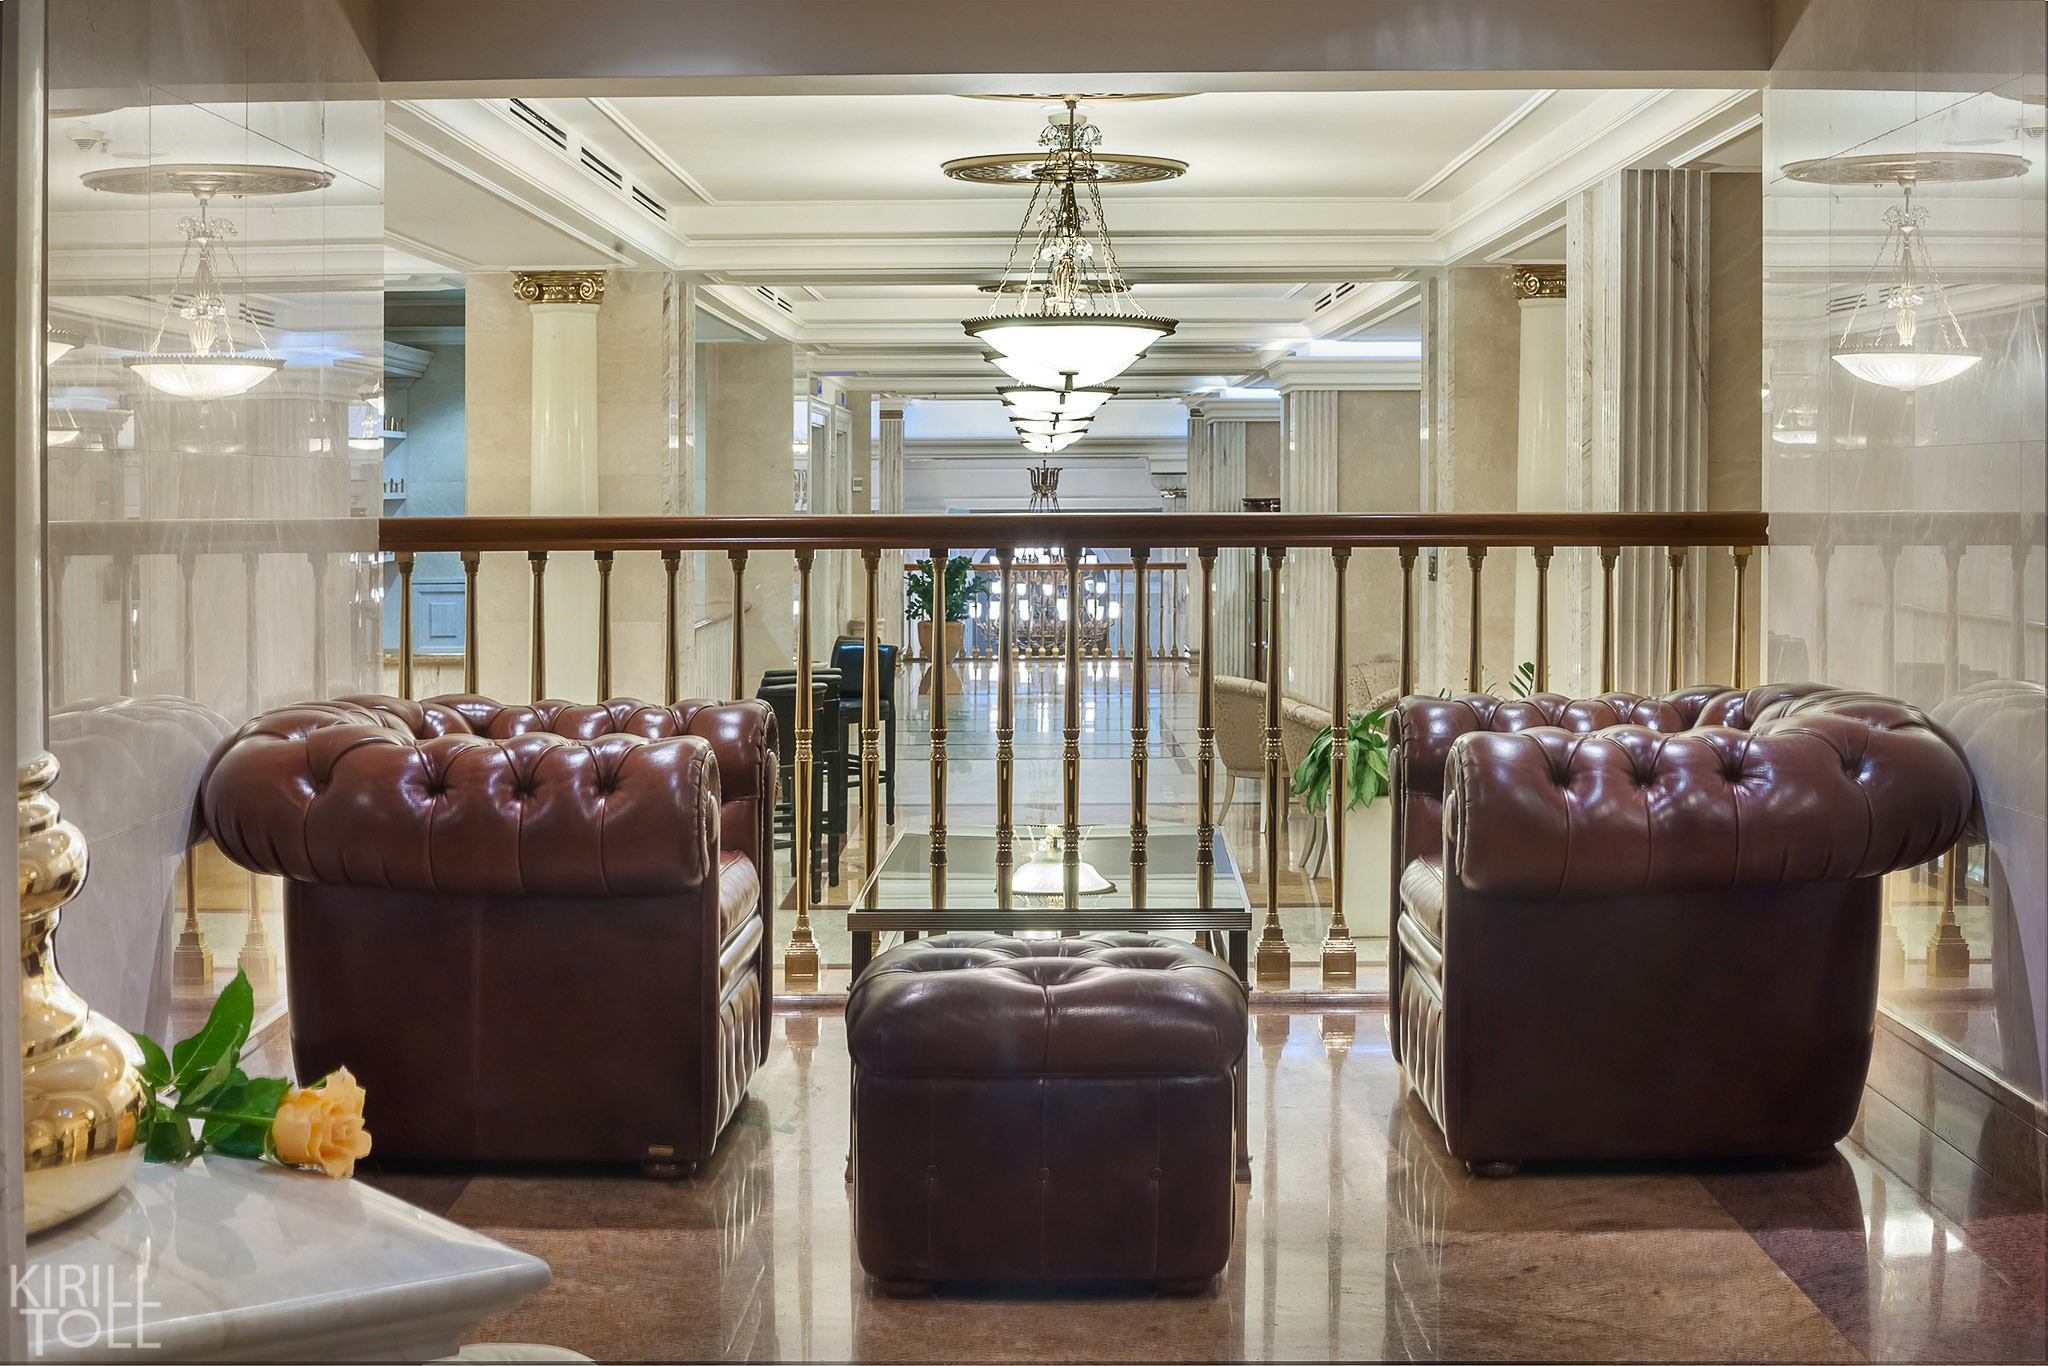 Photos of public recreation areas at the hotel